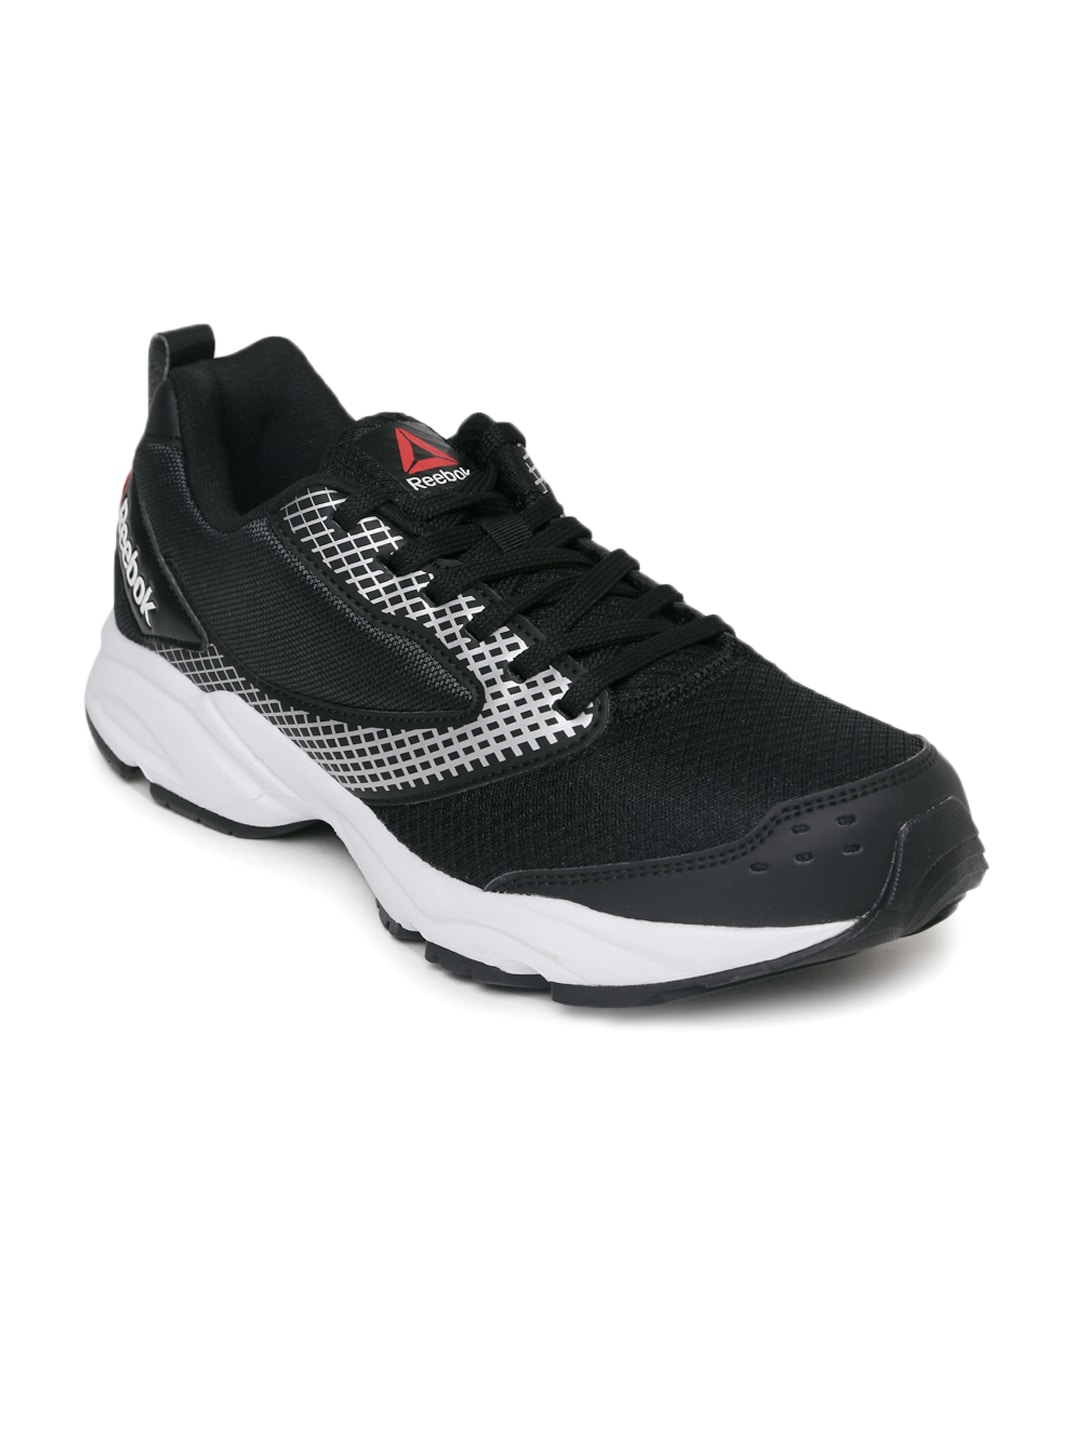 0f1d5e13a042 Reebok bd3634 Men Black Zest Running Shoes - Best Price in India ...